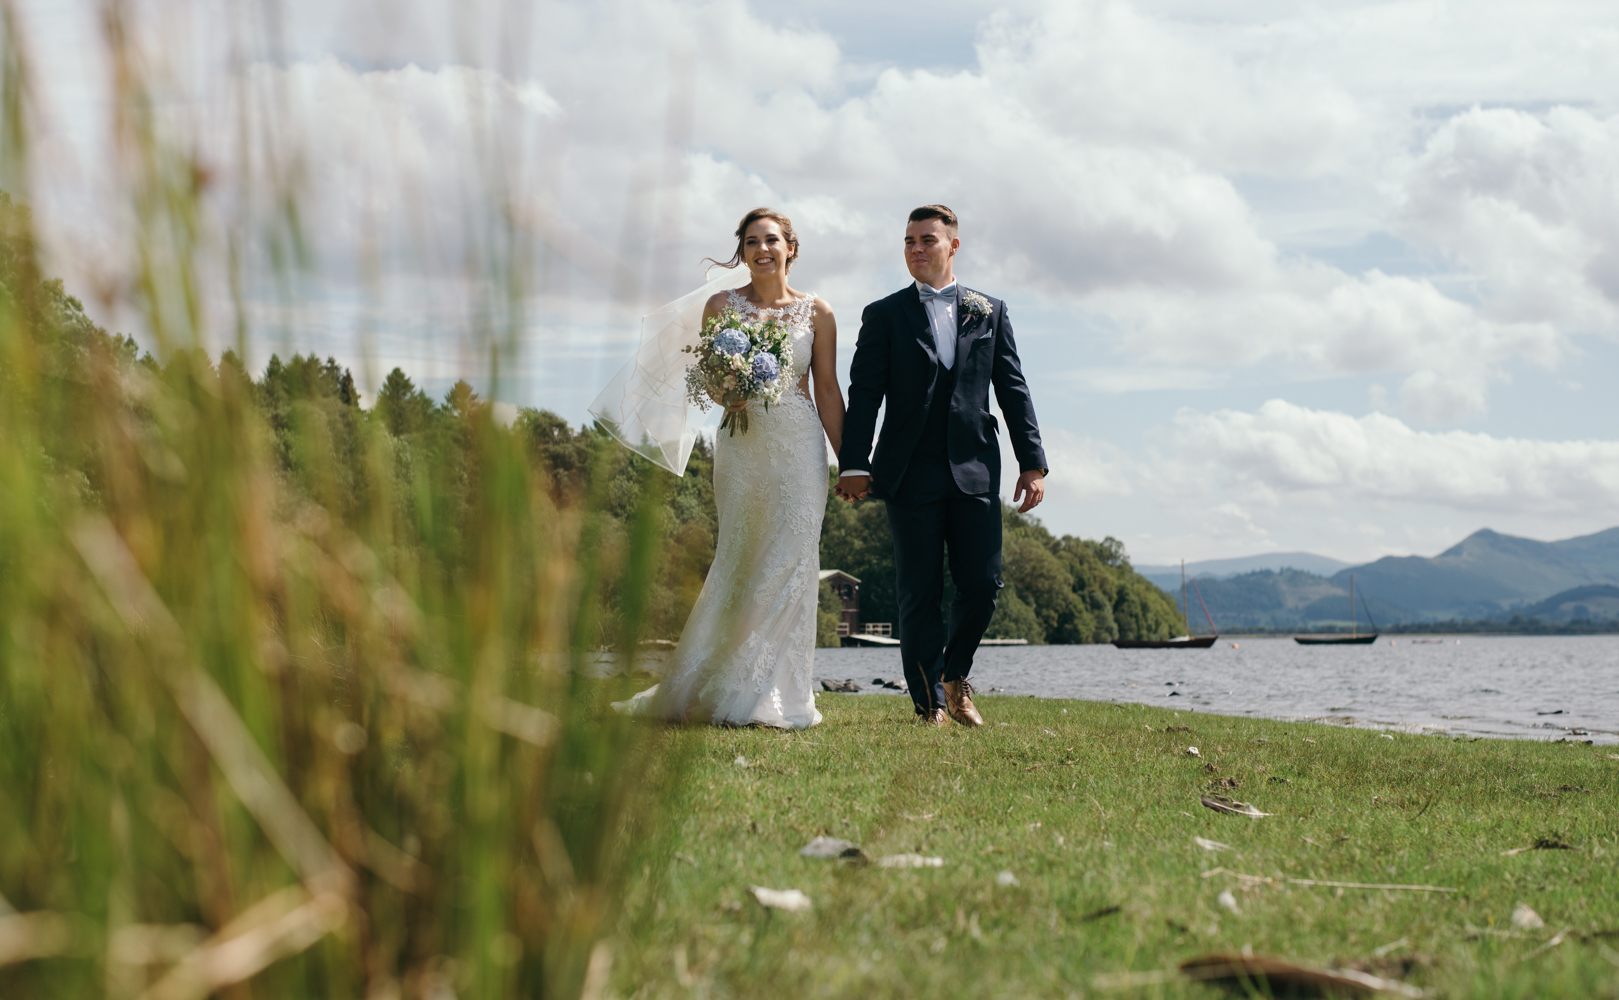 A bride and groom walking along the lake side